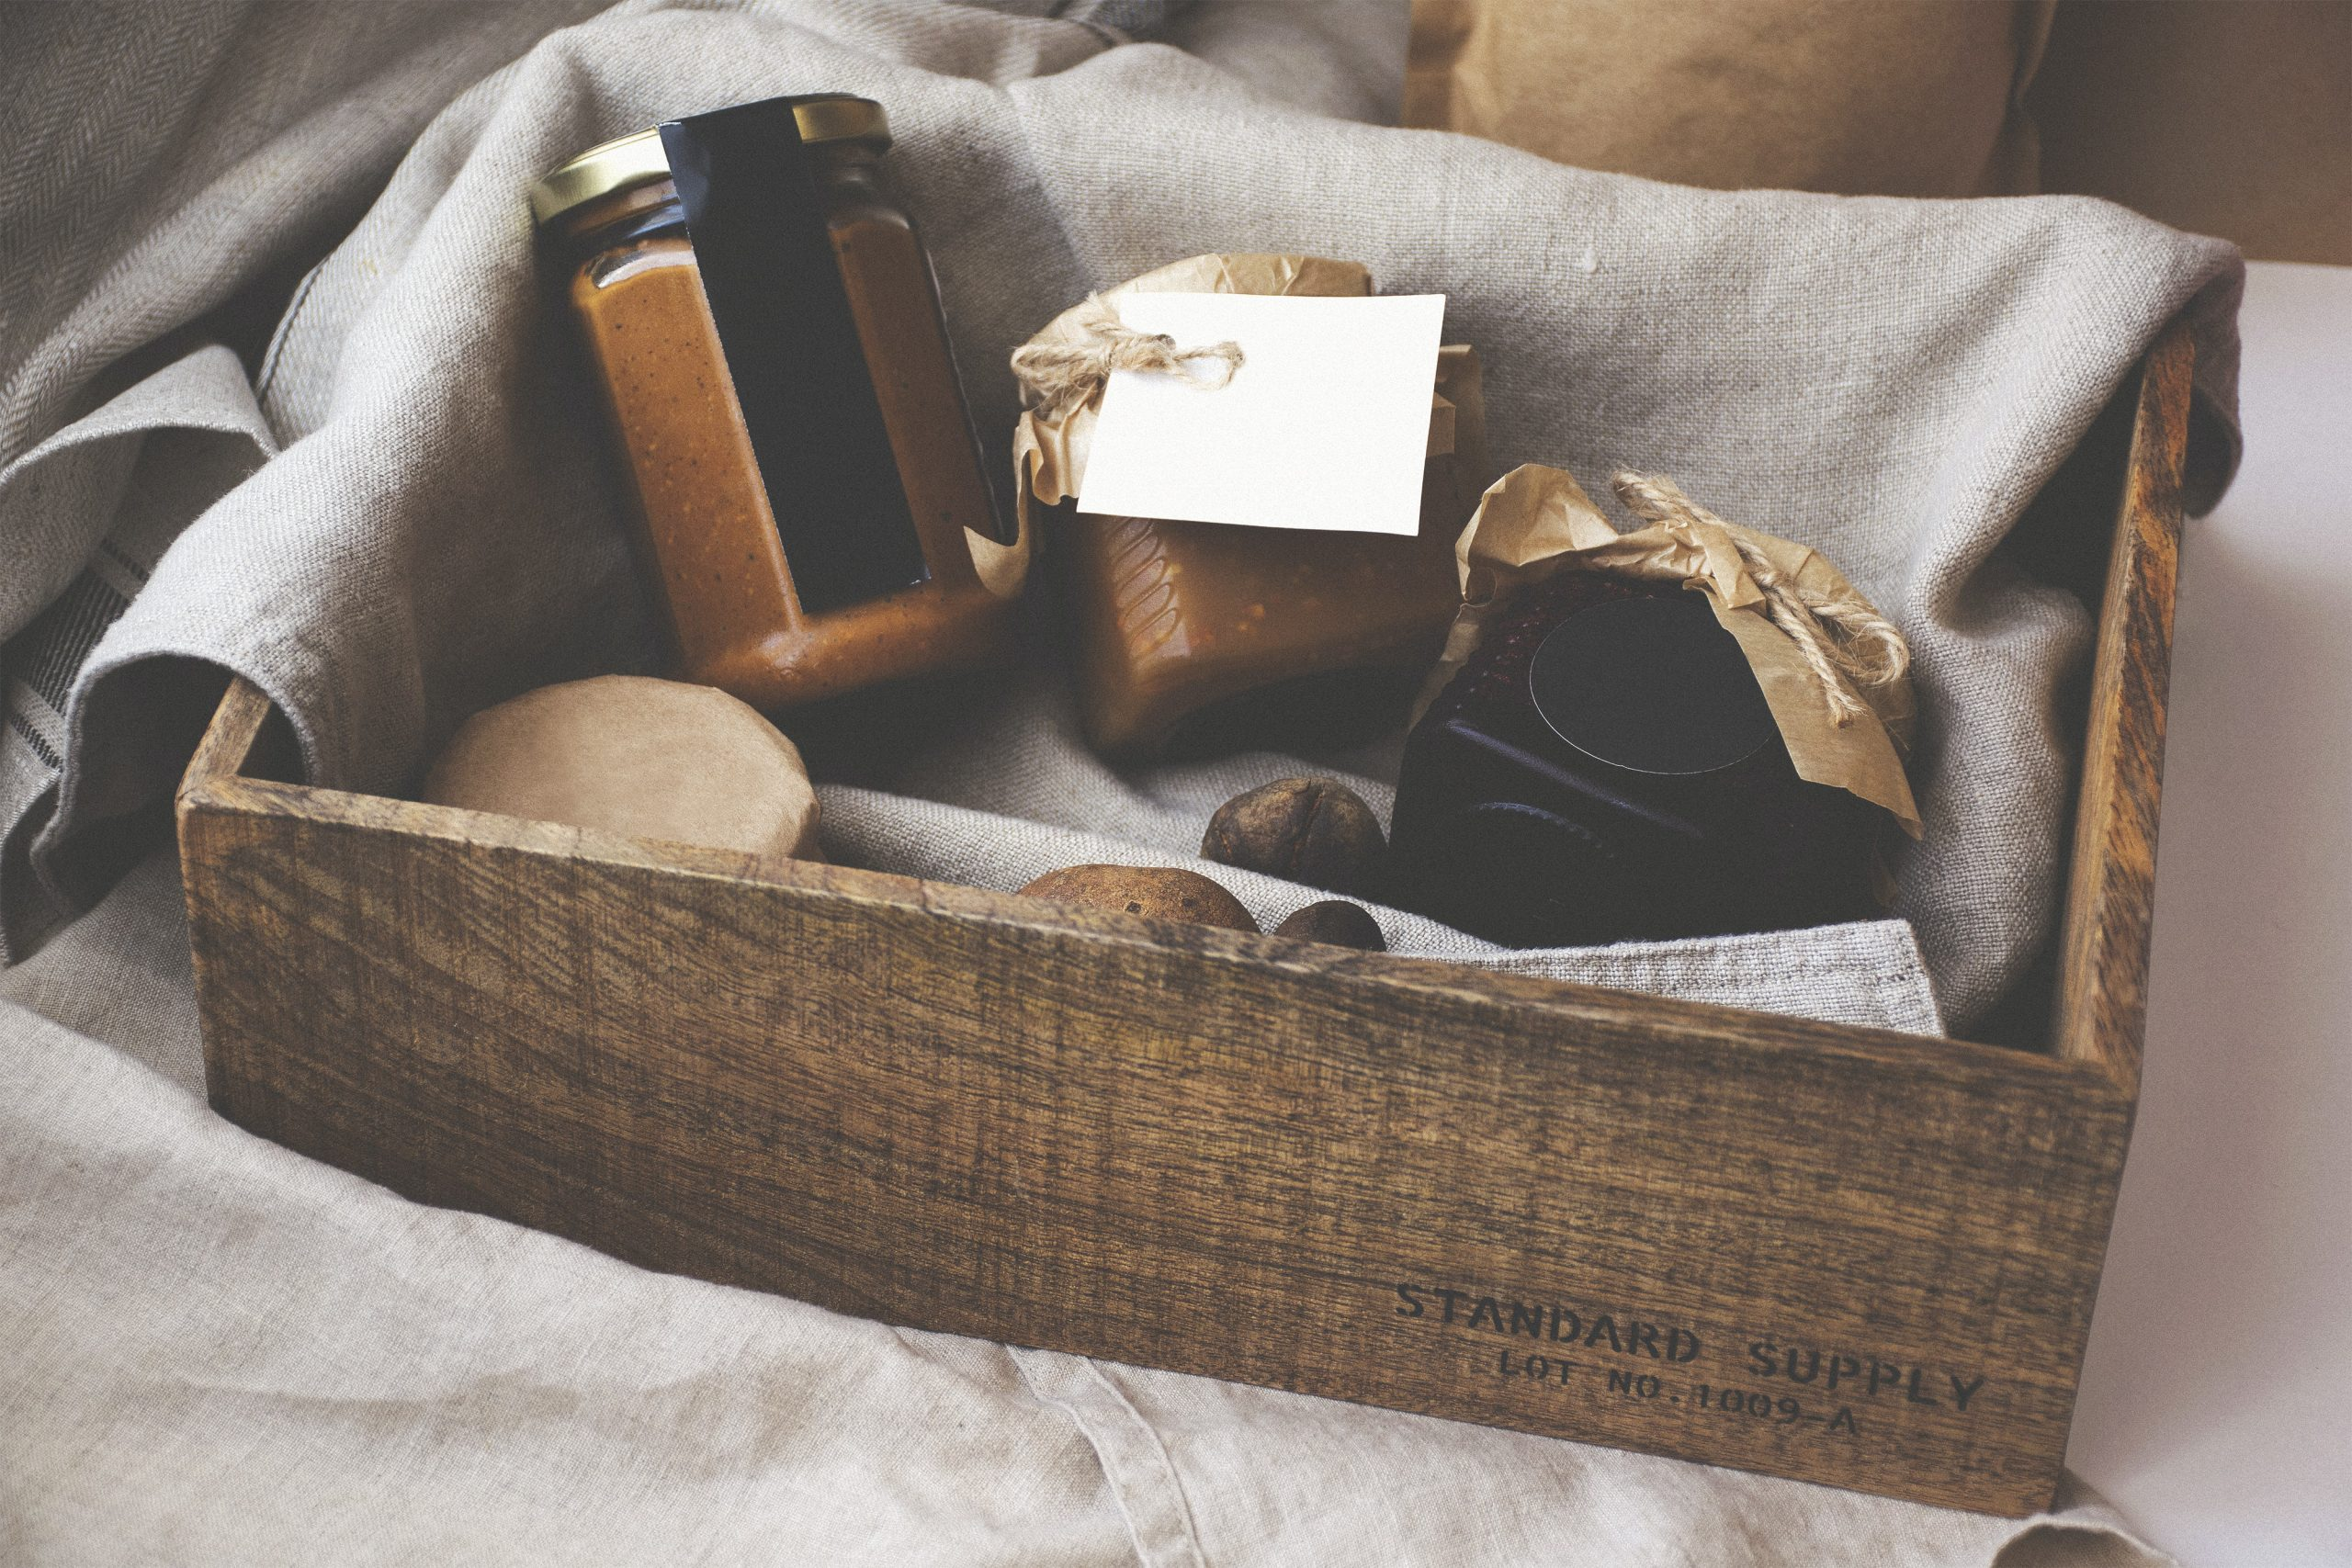 reasons to give gift hampers